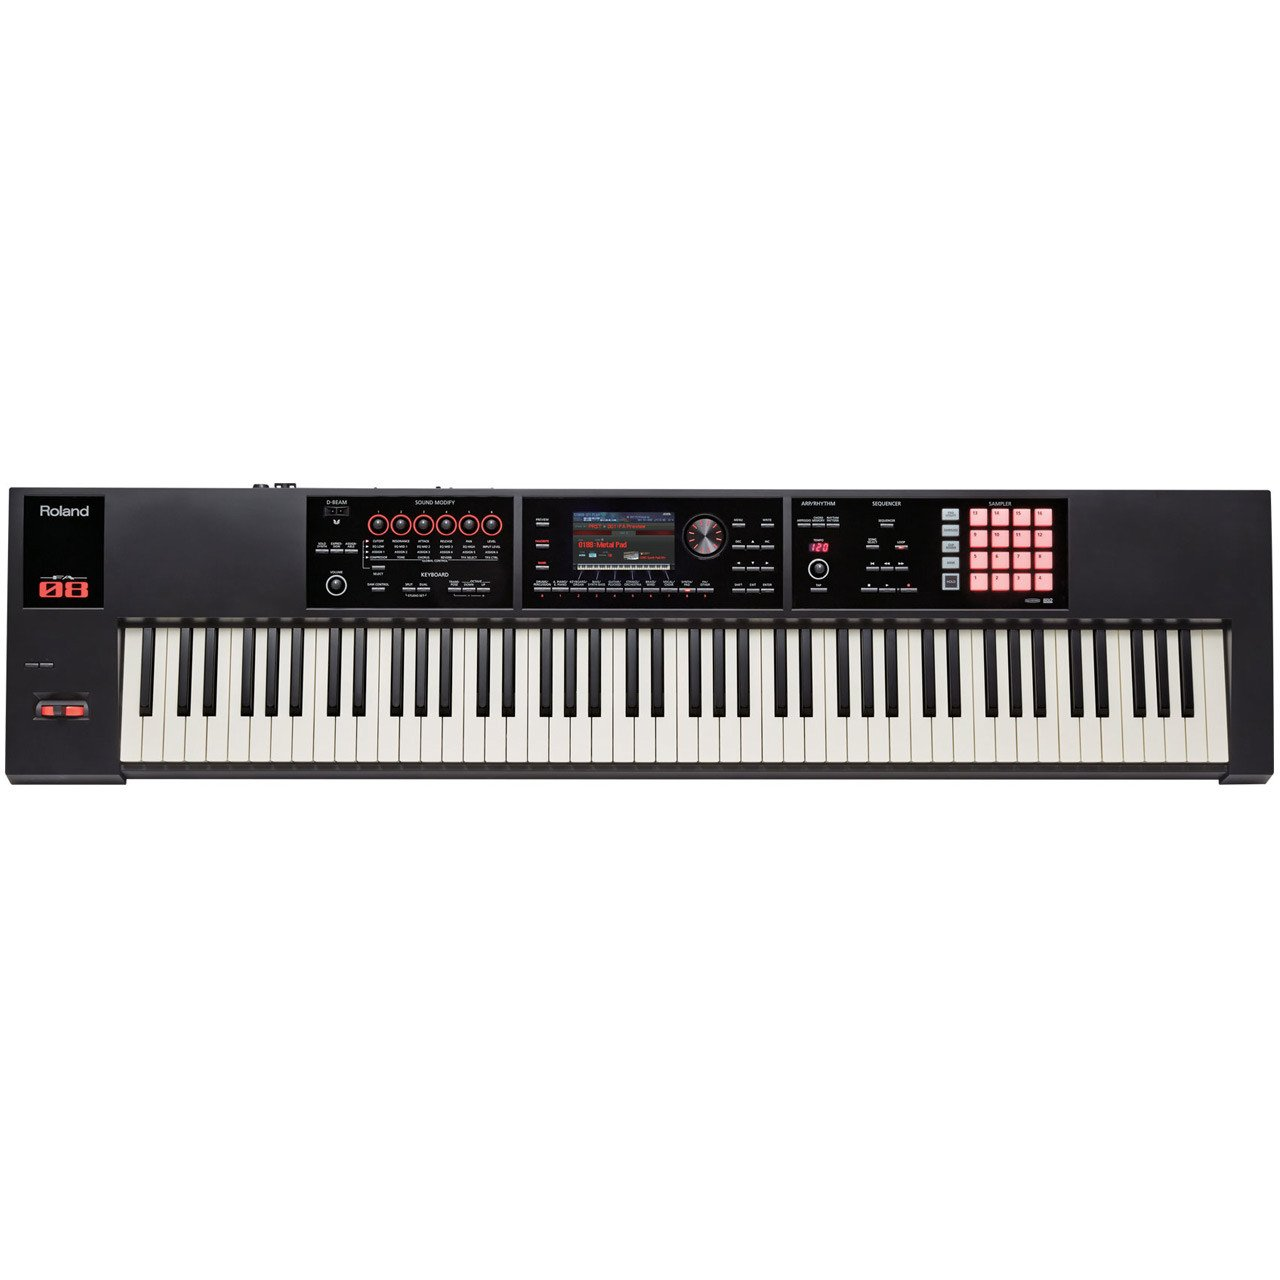 Roland FA-08 Music Workstation Keyboard